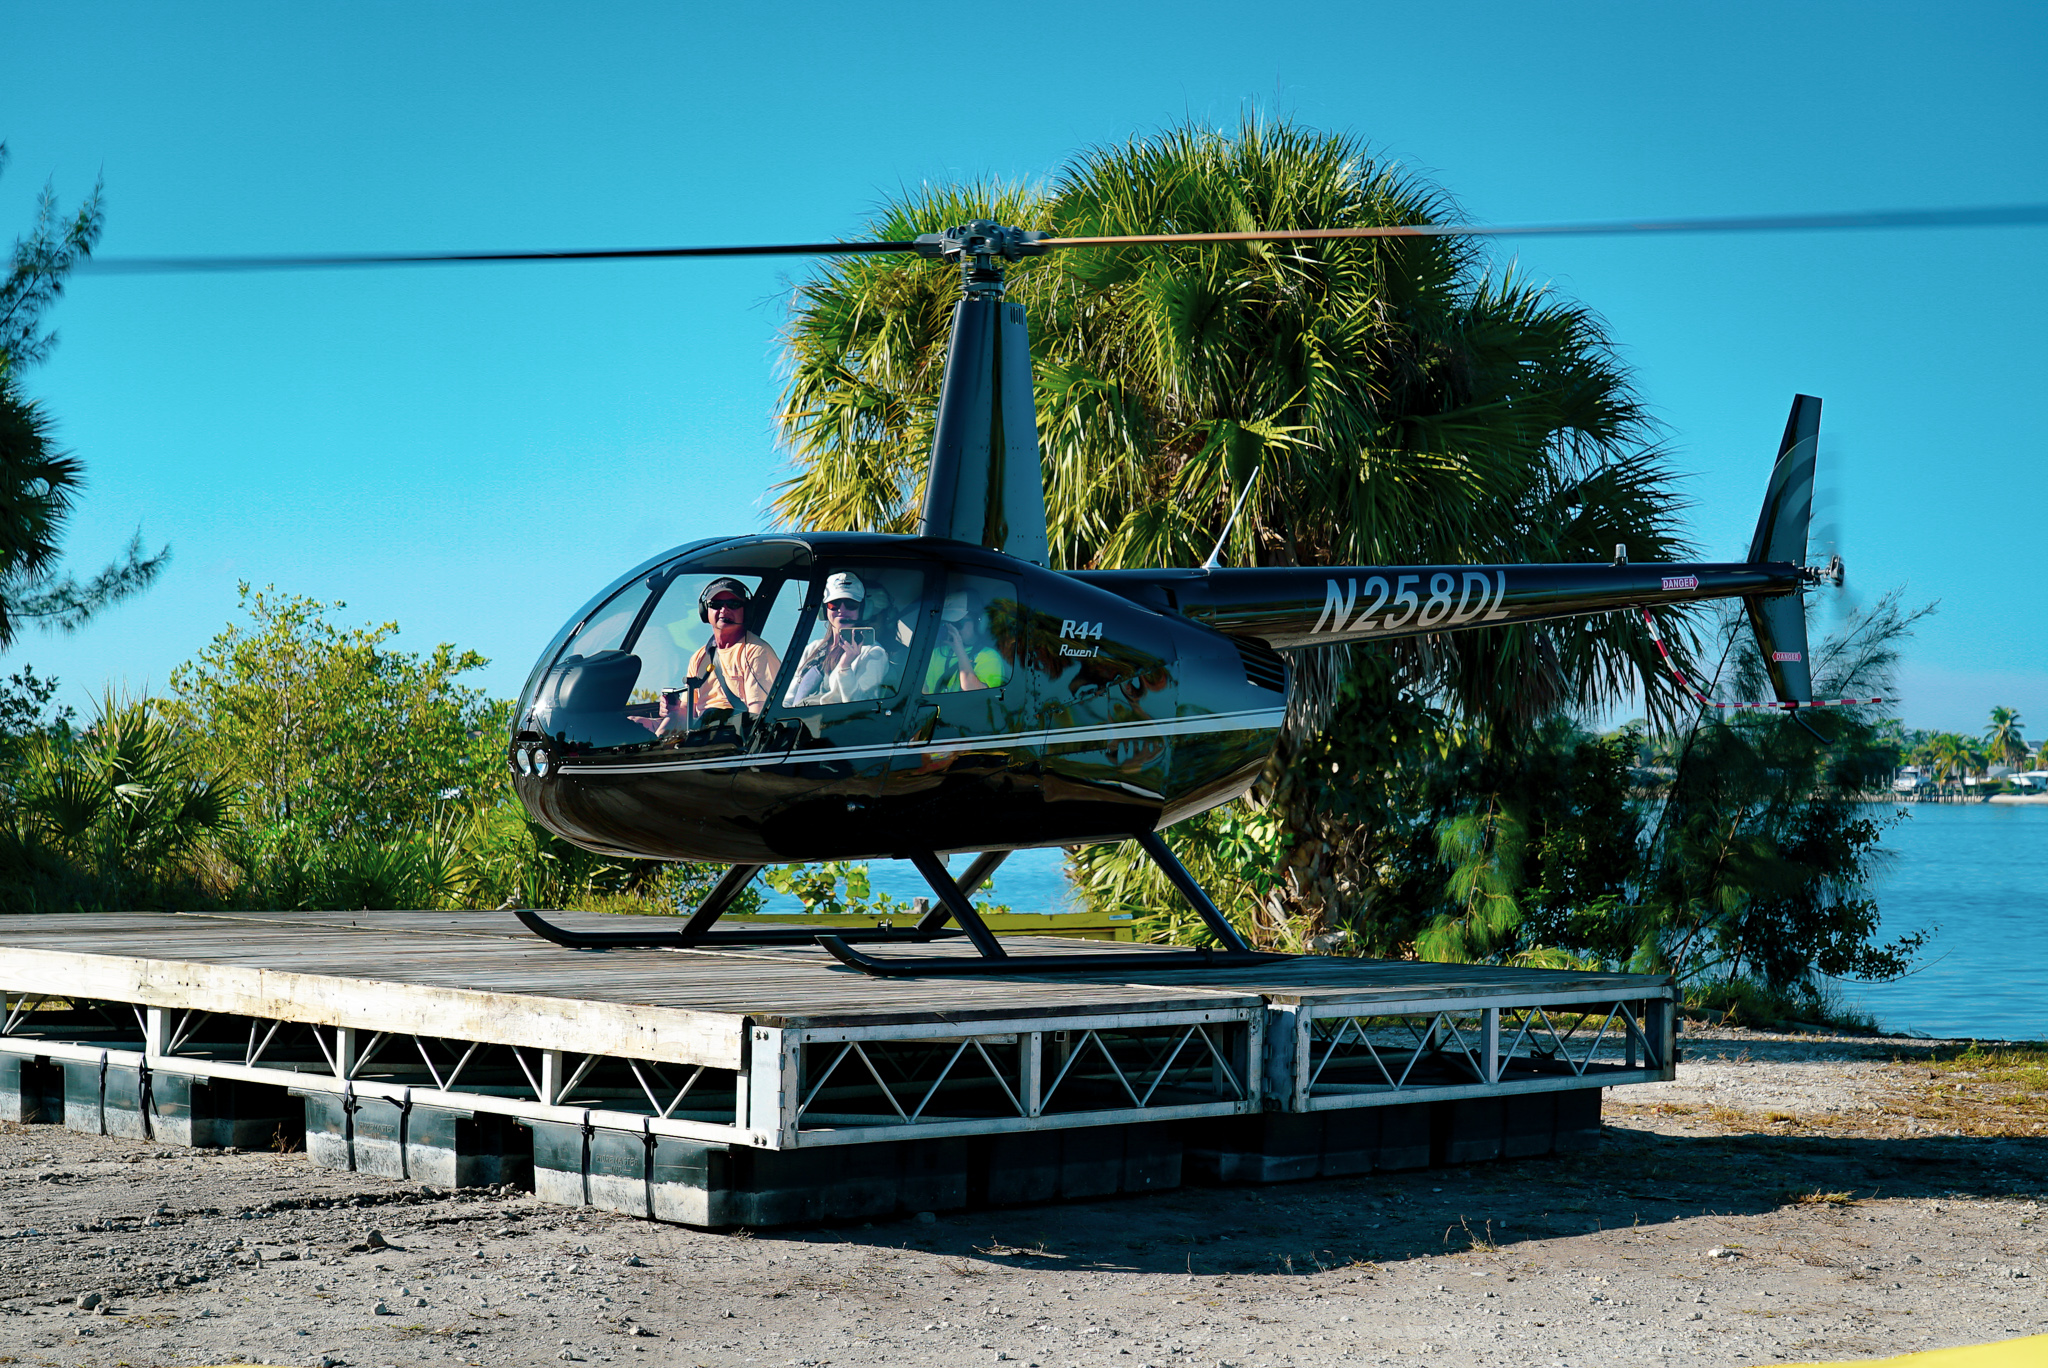 Guest arriving to the Stuart Boat Show by Helicopter